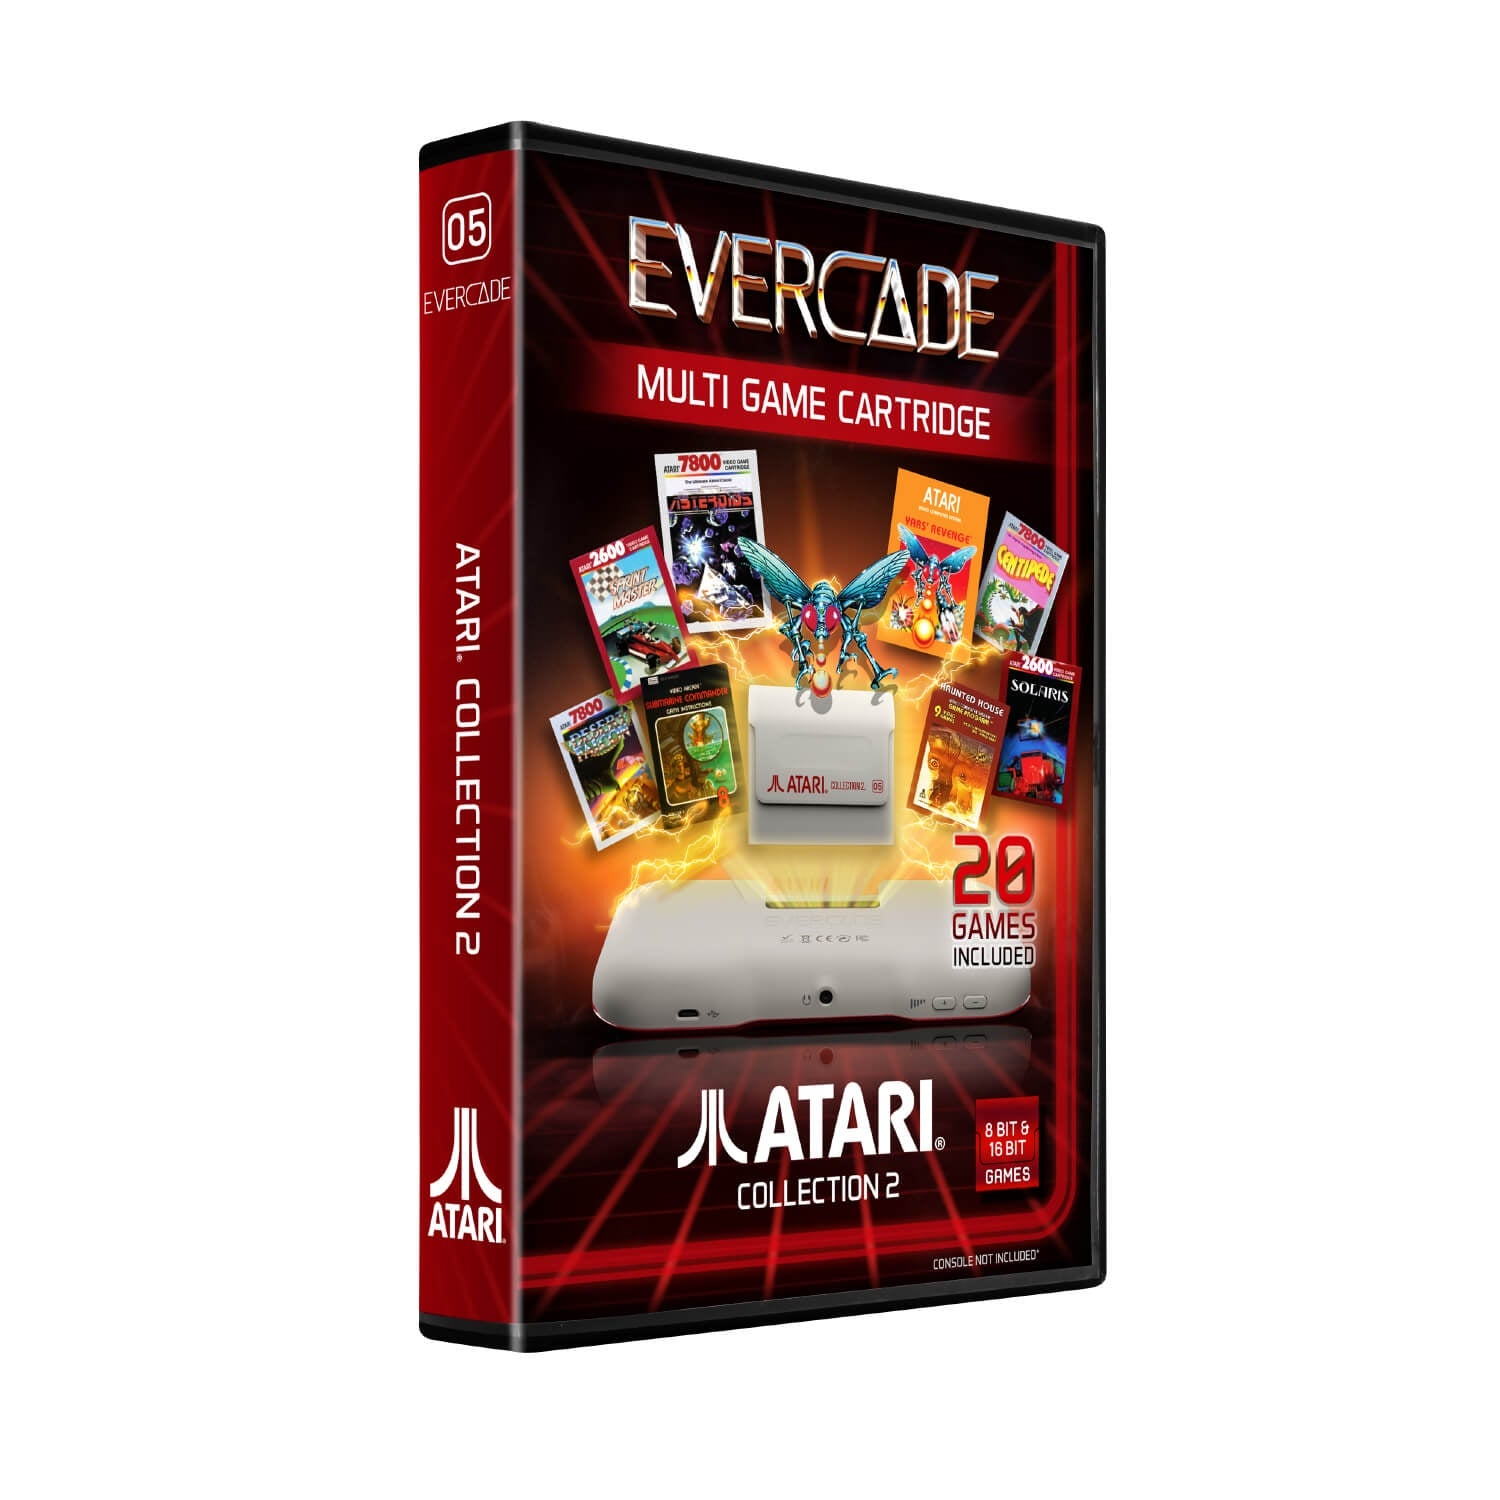 Evercade Atari Collection Cartridge Volume 2